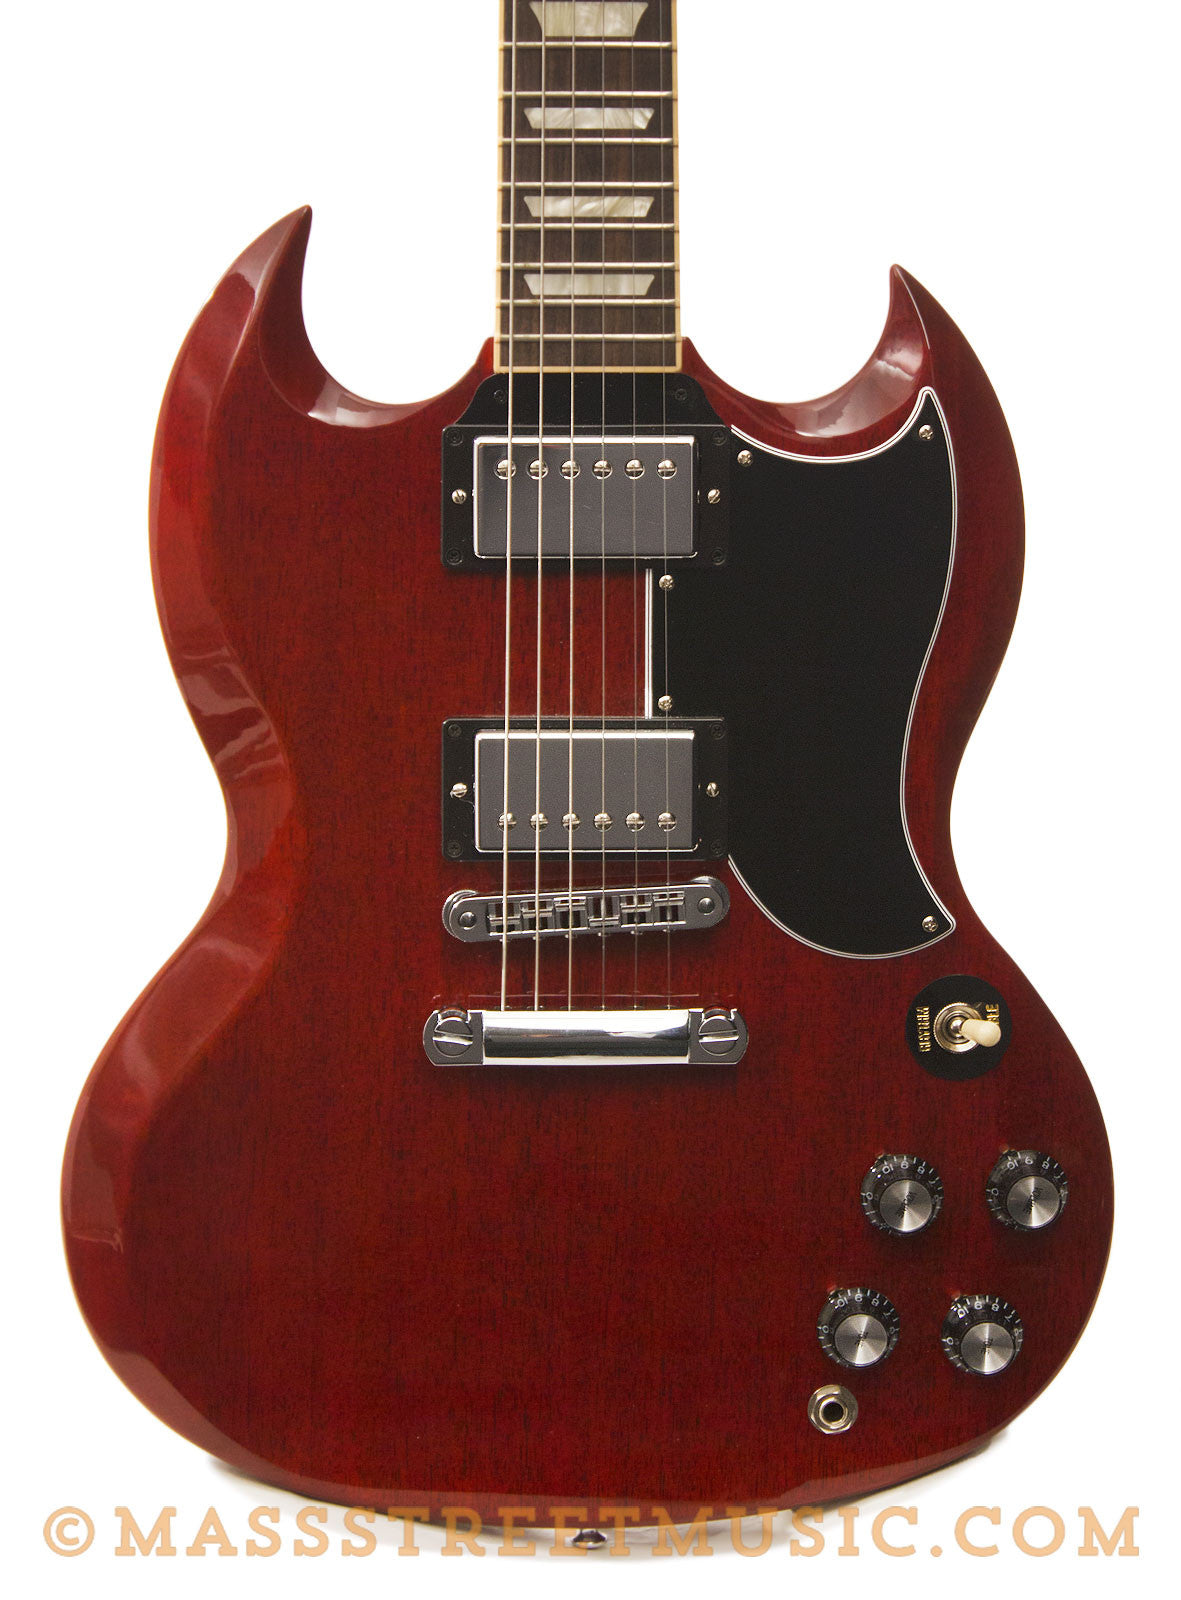 Gibson Electric Guitars - 2013 SG Standard